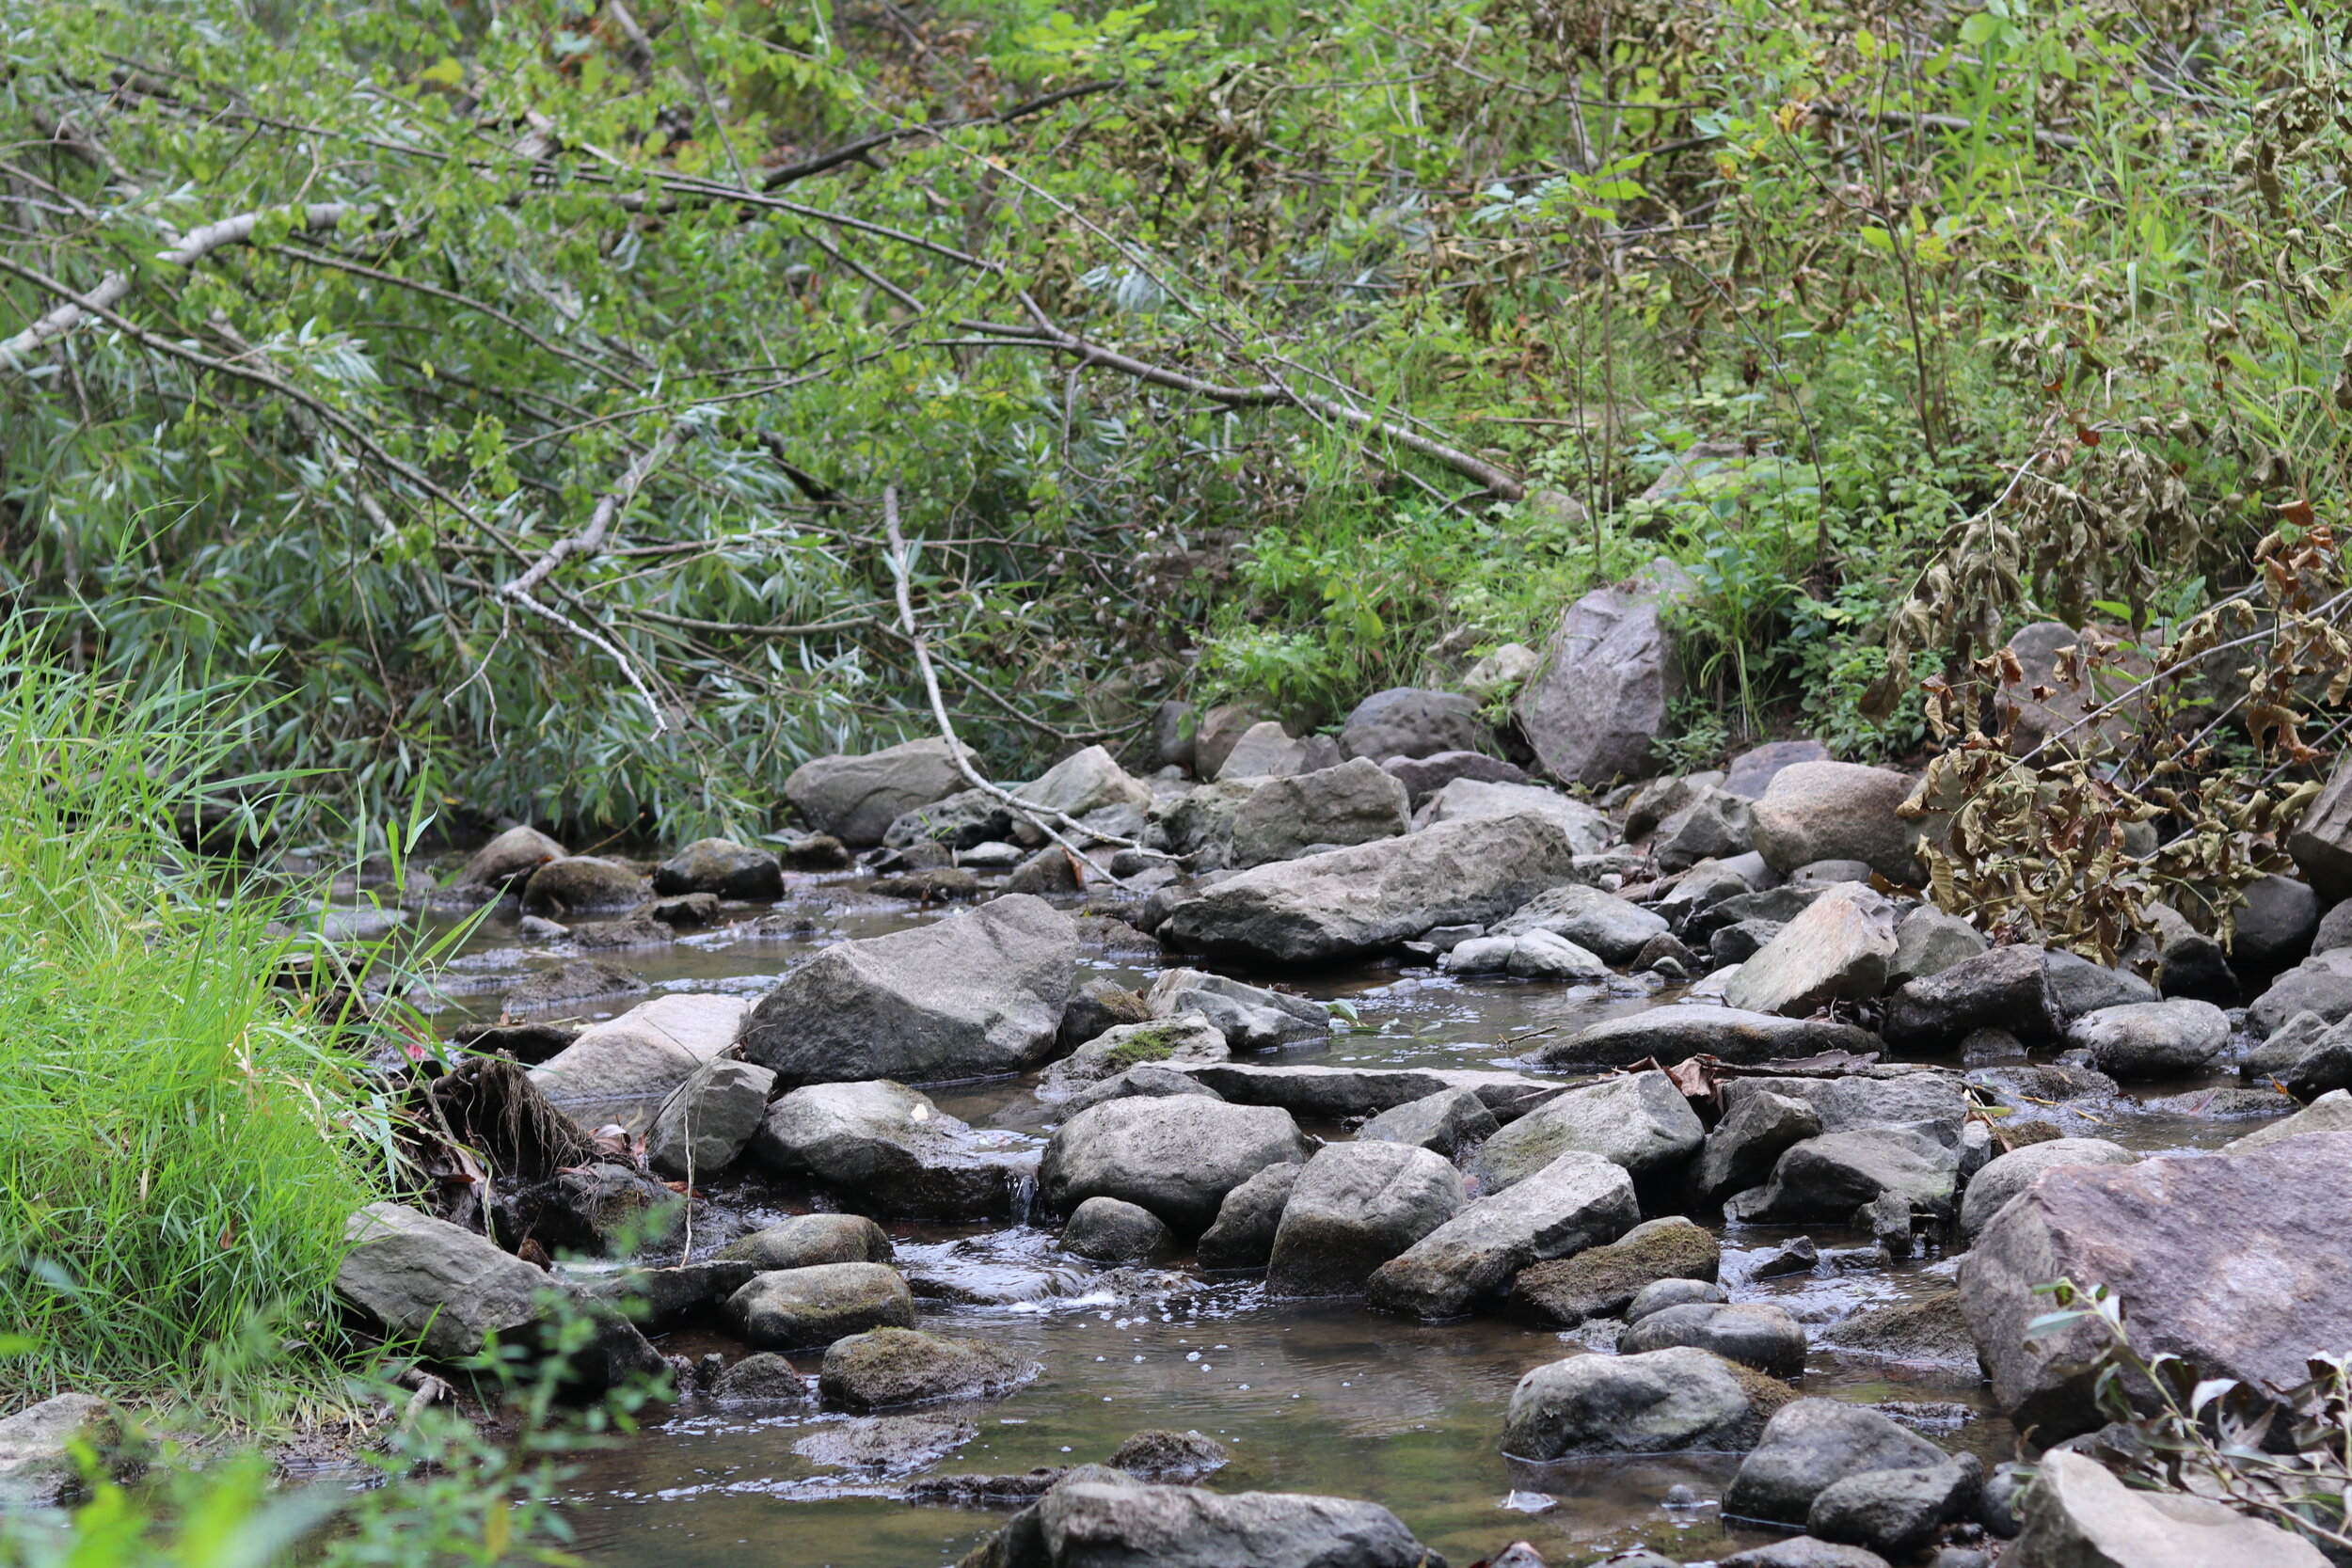 Branches, logs, and other debris were blocking the flow of water in Fish Creek, creating a flooding hazard and also creating pools of warm, standing water.